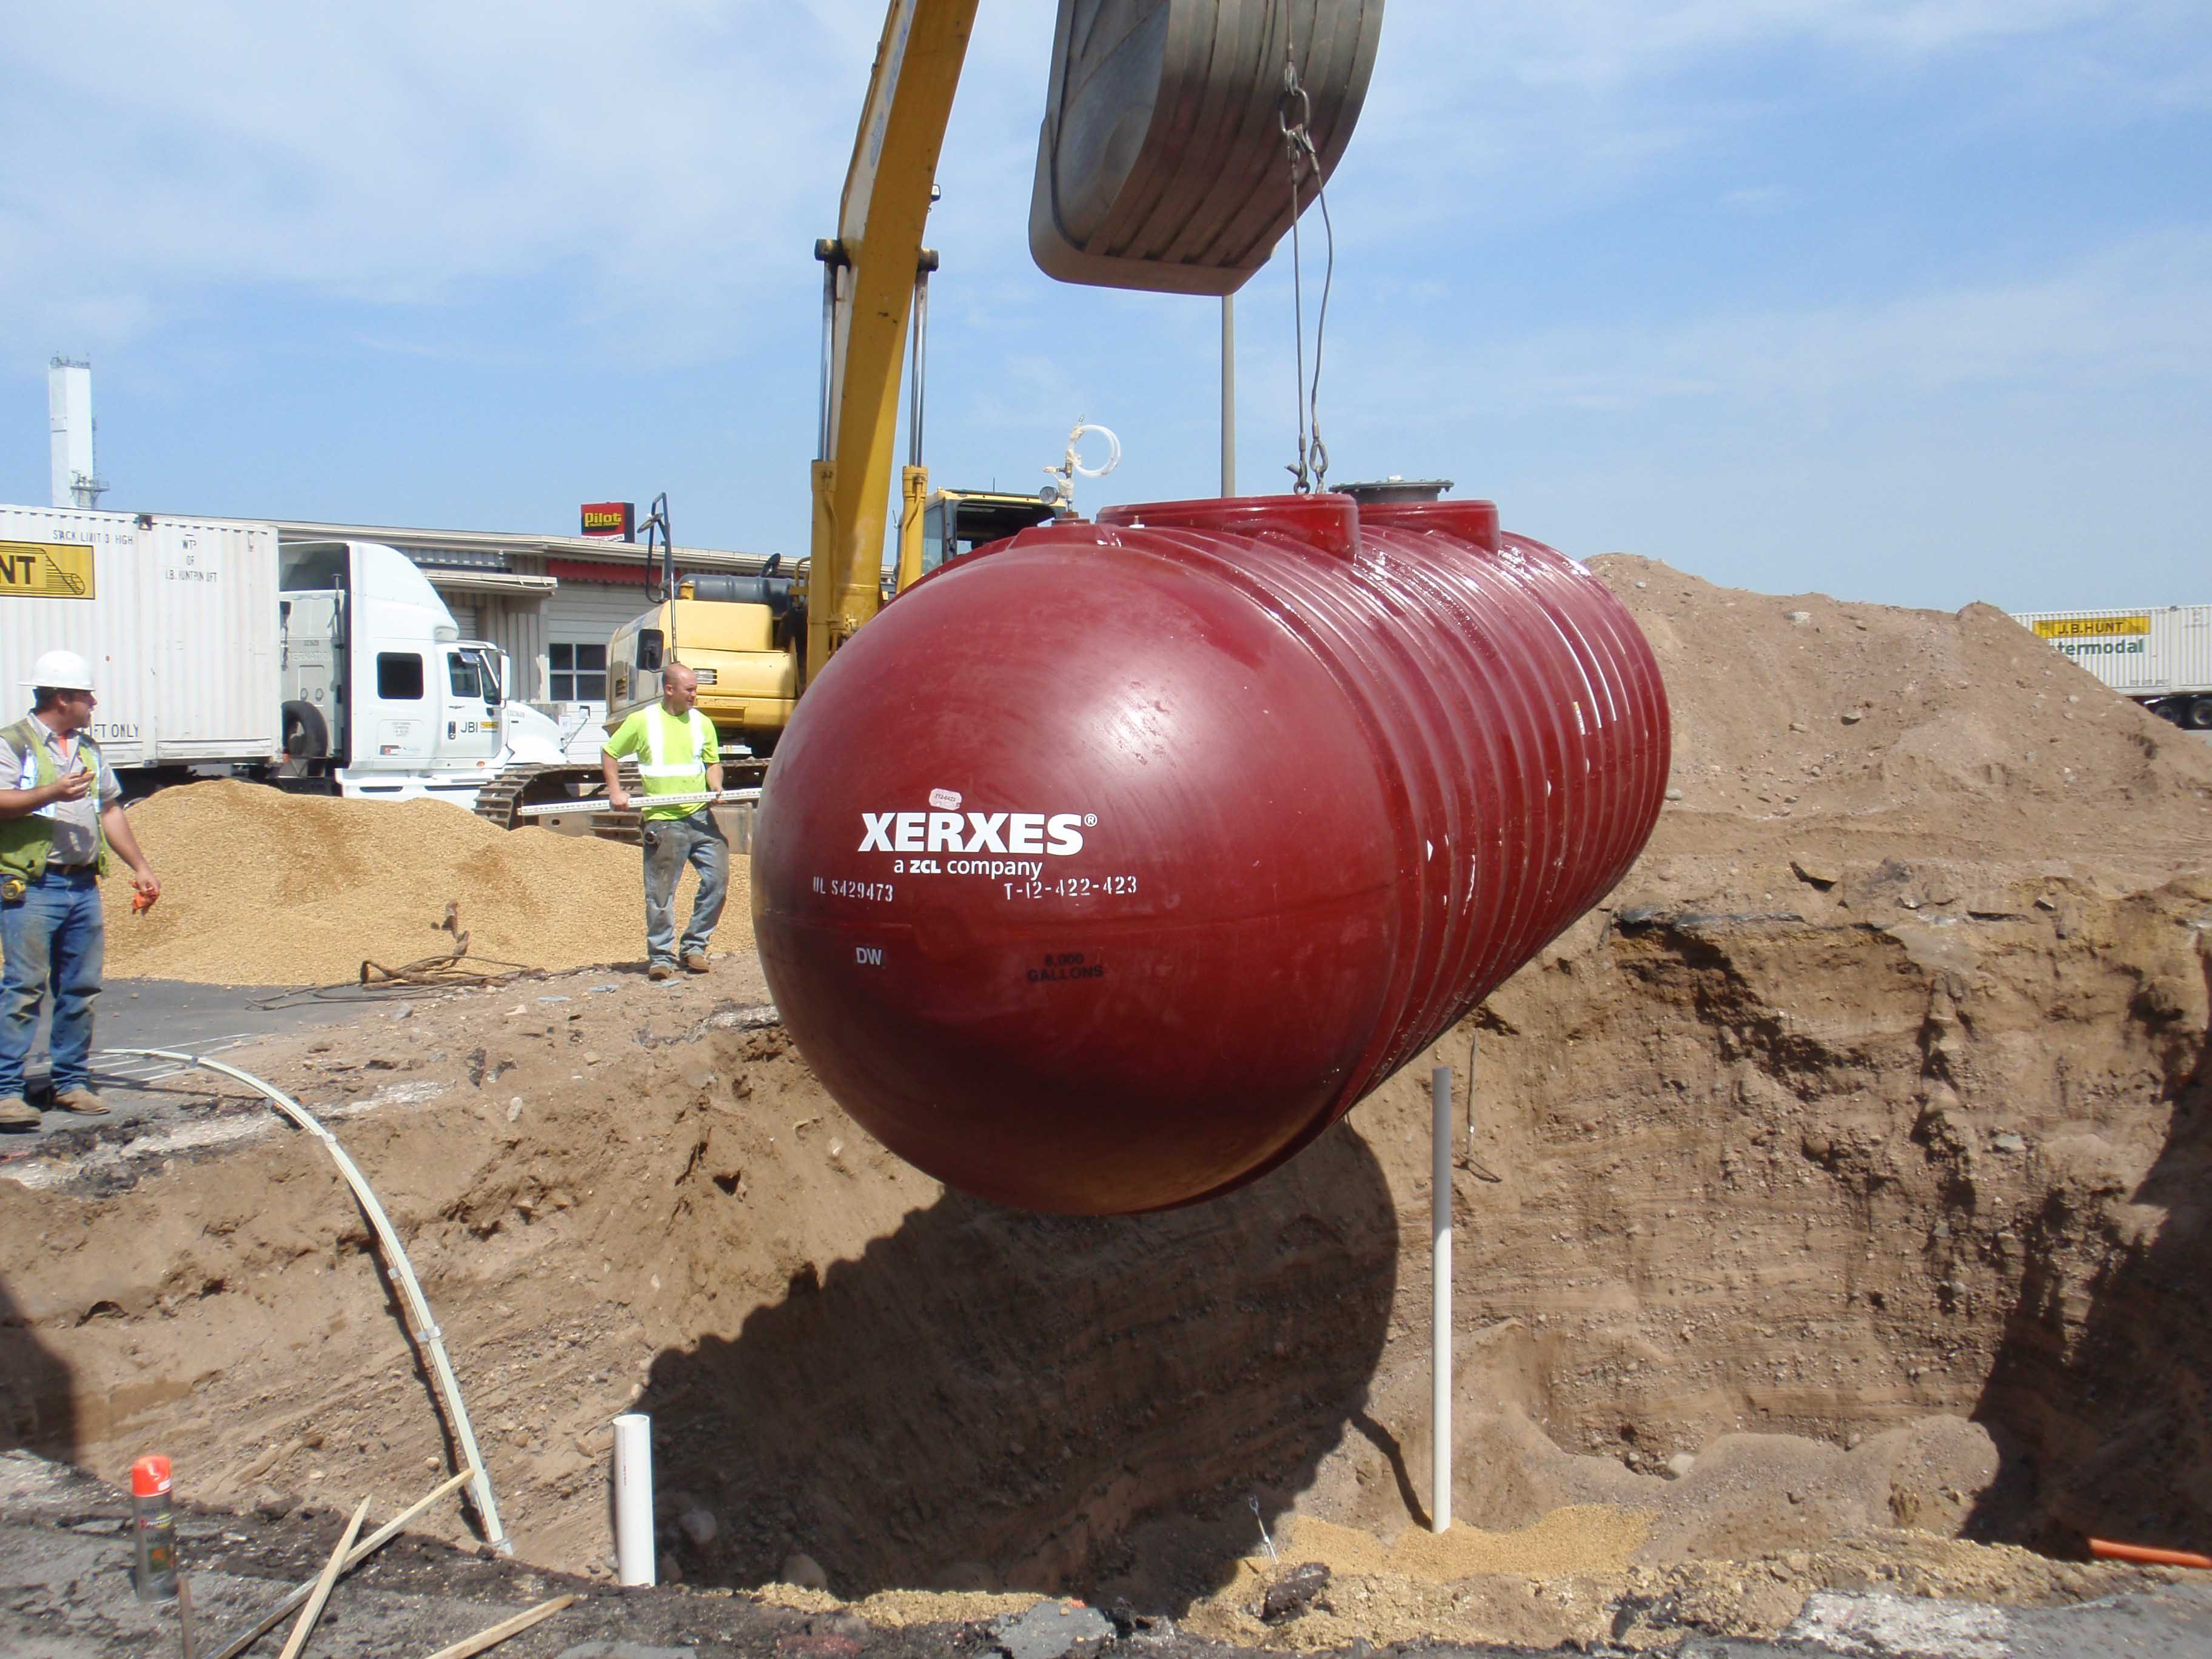 Xerxes Double Wall Fiberglass underground storage tank UST being lowered into ground during tank replacement in Adelanto, CA